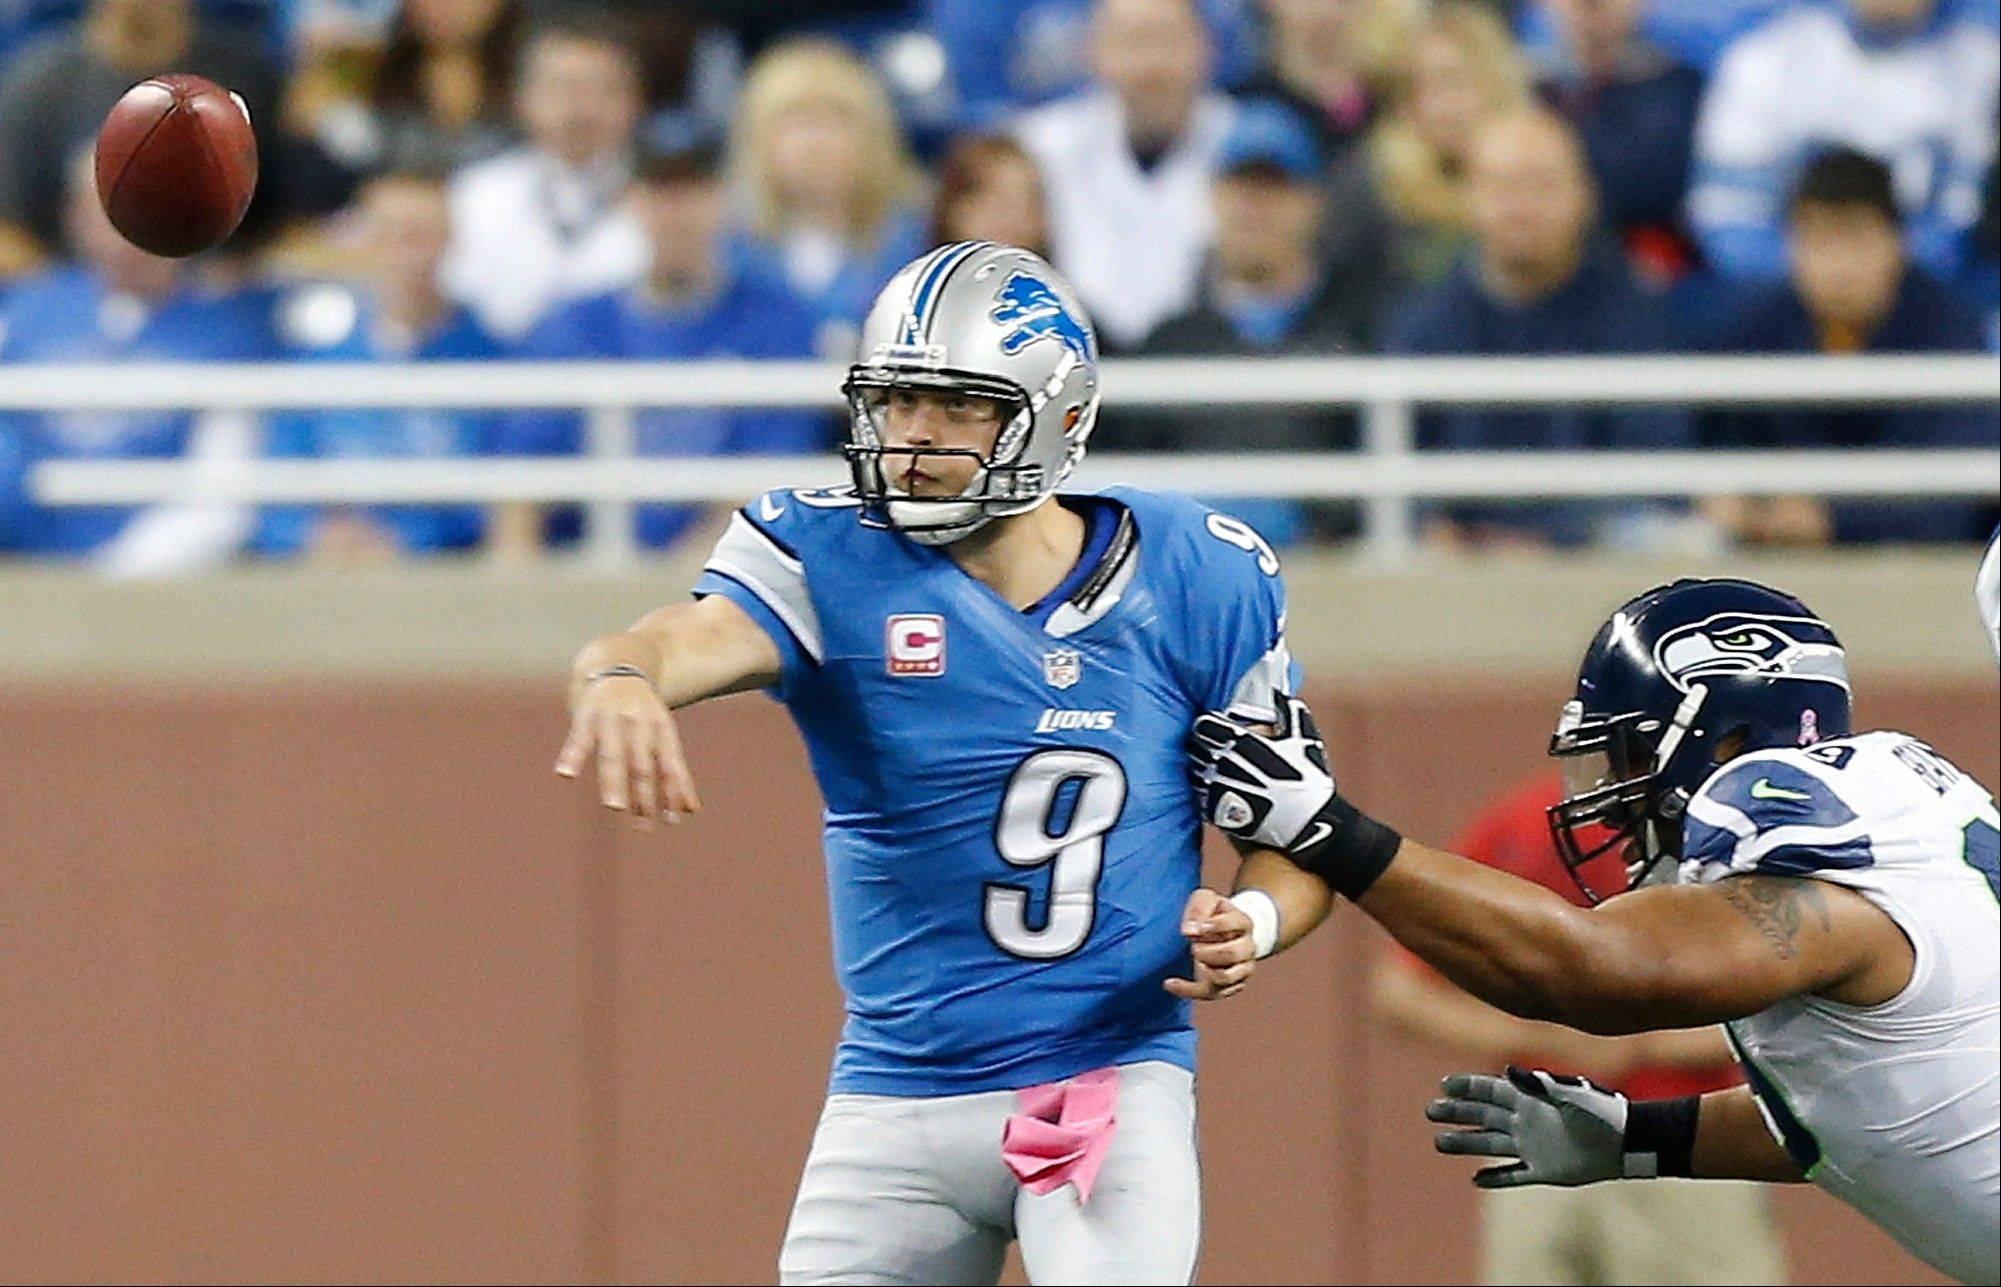 Detroit Lions quarterback Matthew Stafford (9) throws a pass as Seattle Seahawks defensive tackle Alan Branch (99) puts pressure on the quarterback in the first half in Detroit.